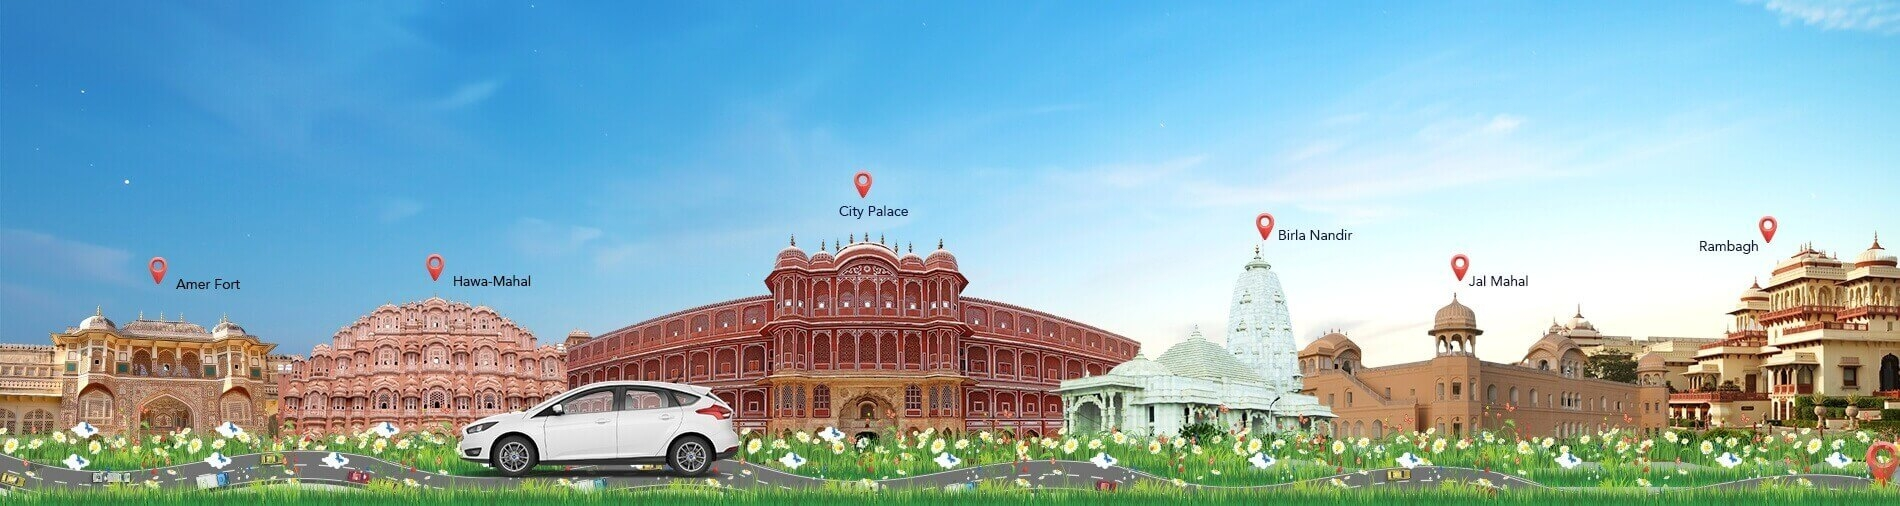 Taxirajasthan (@taxirajasthan) Cover Image